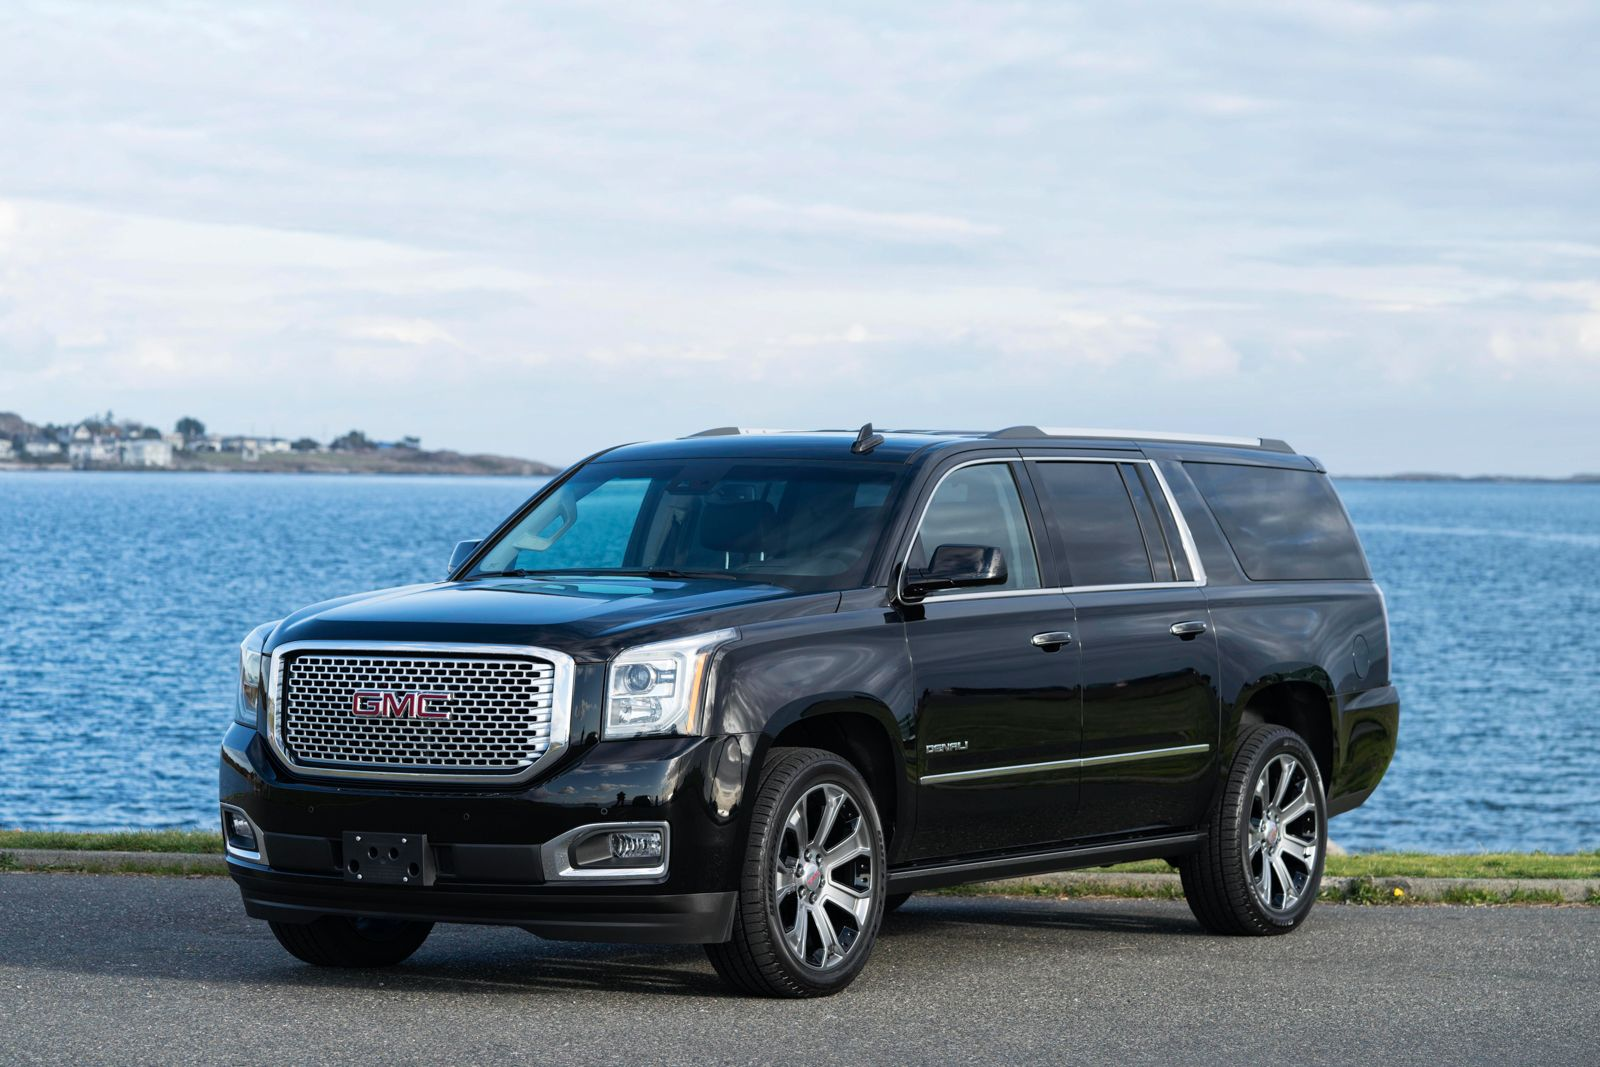 2017 Gmc Yukon Denali Xl For Sale Gmc Yukon Denali Gmc Yukon